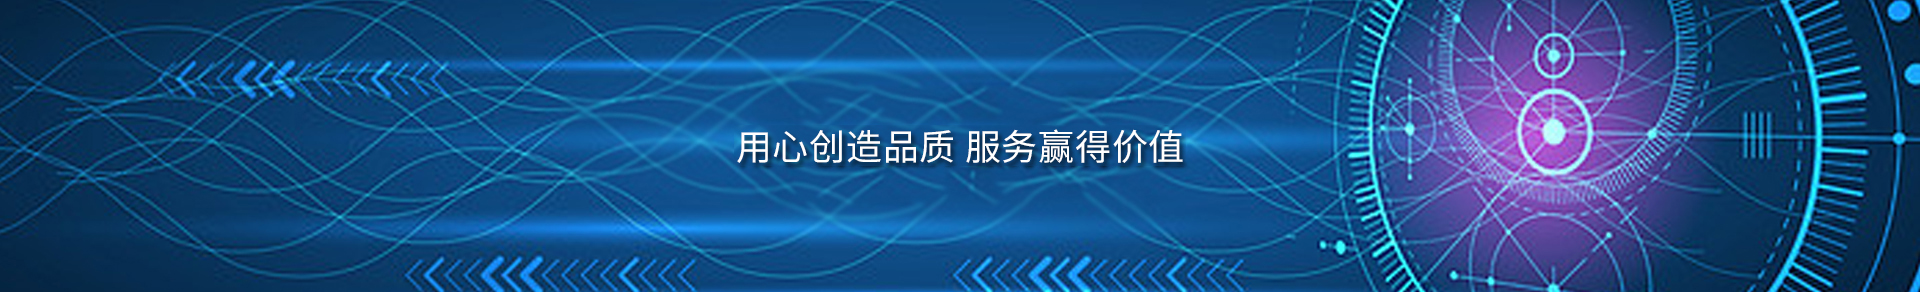 http://www.szxinding.cn/data/images/slide/20200518173218_239.jpg